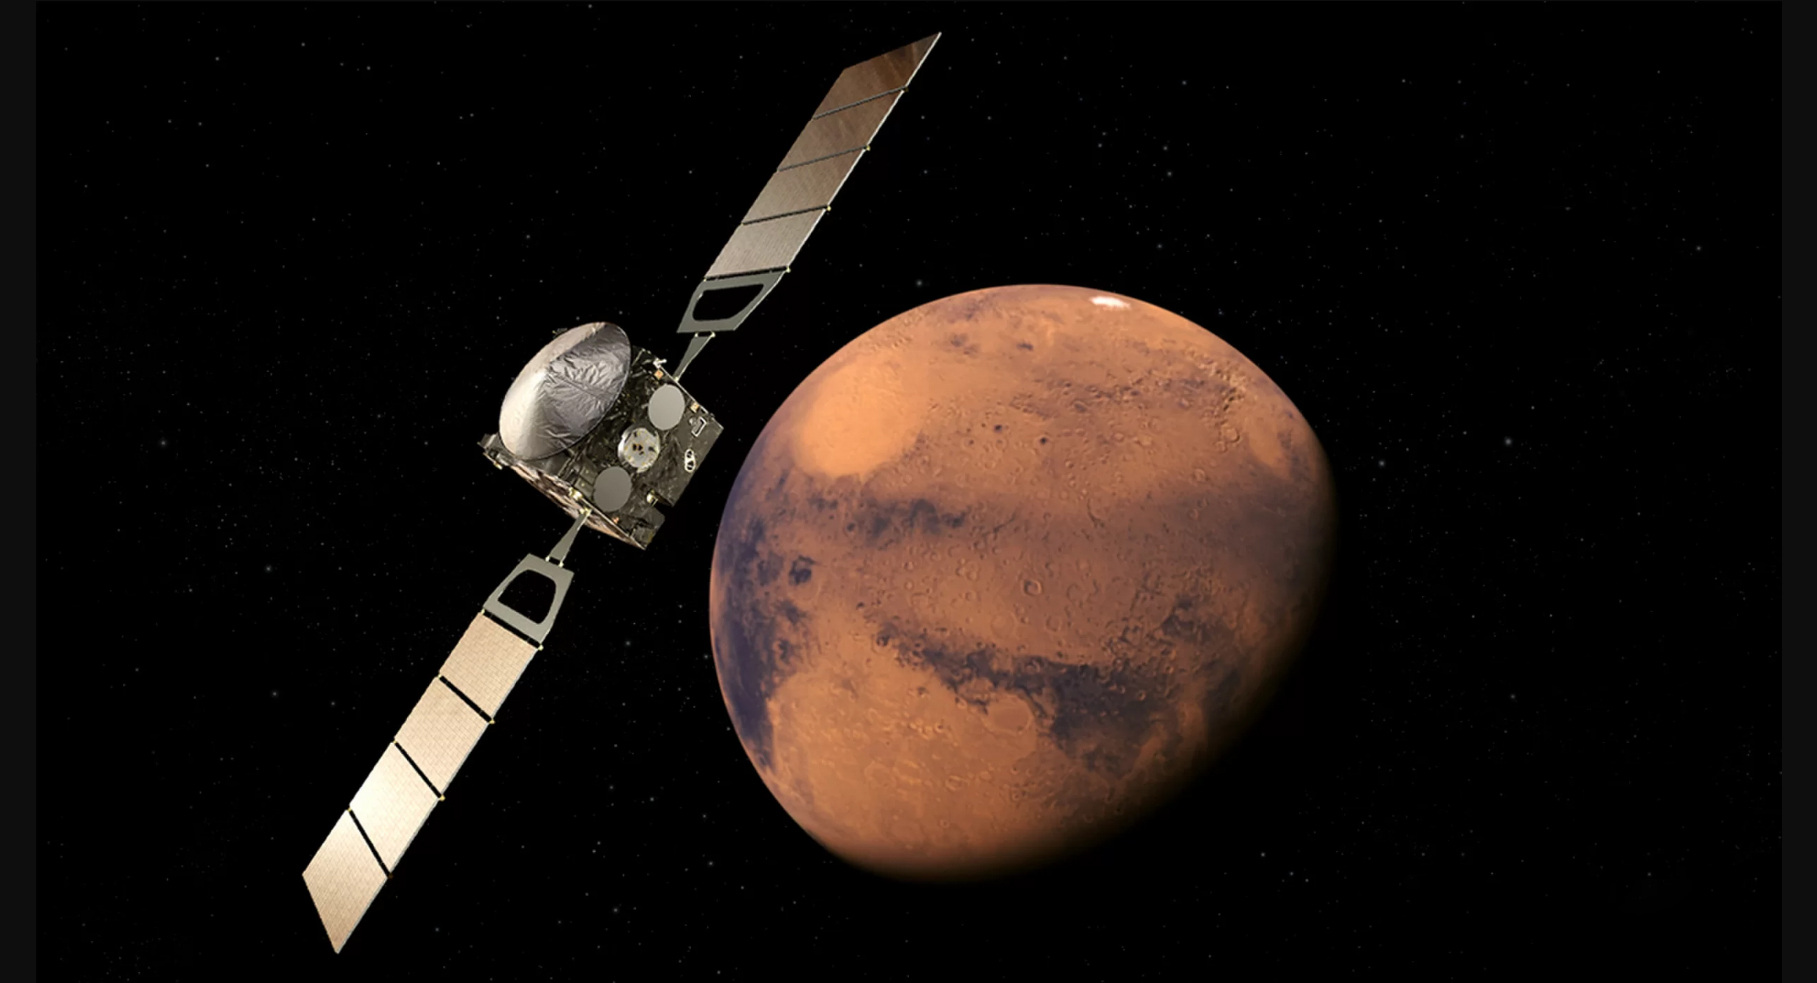 esa science amp technology mars express - 1280×720